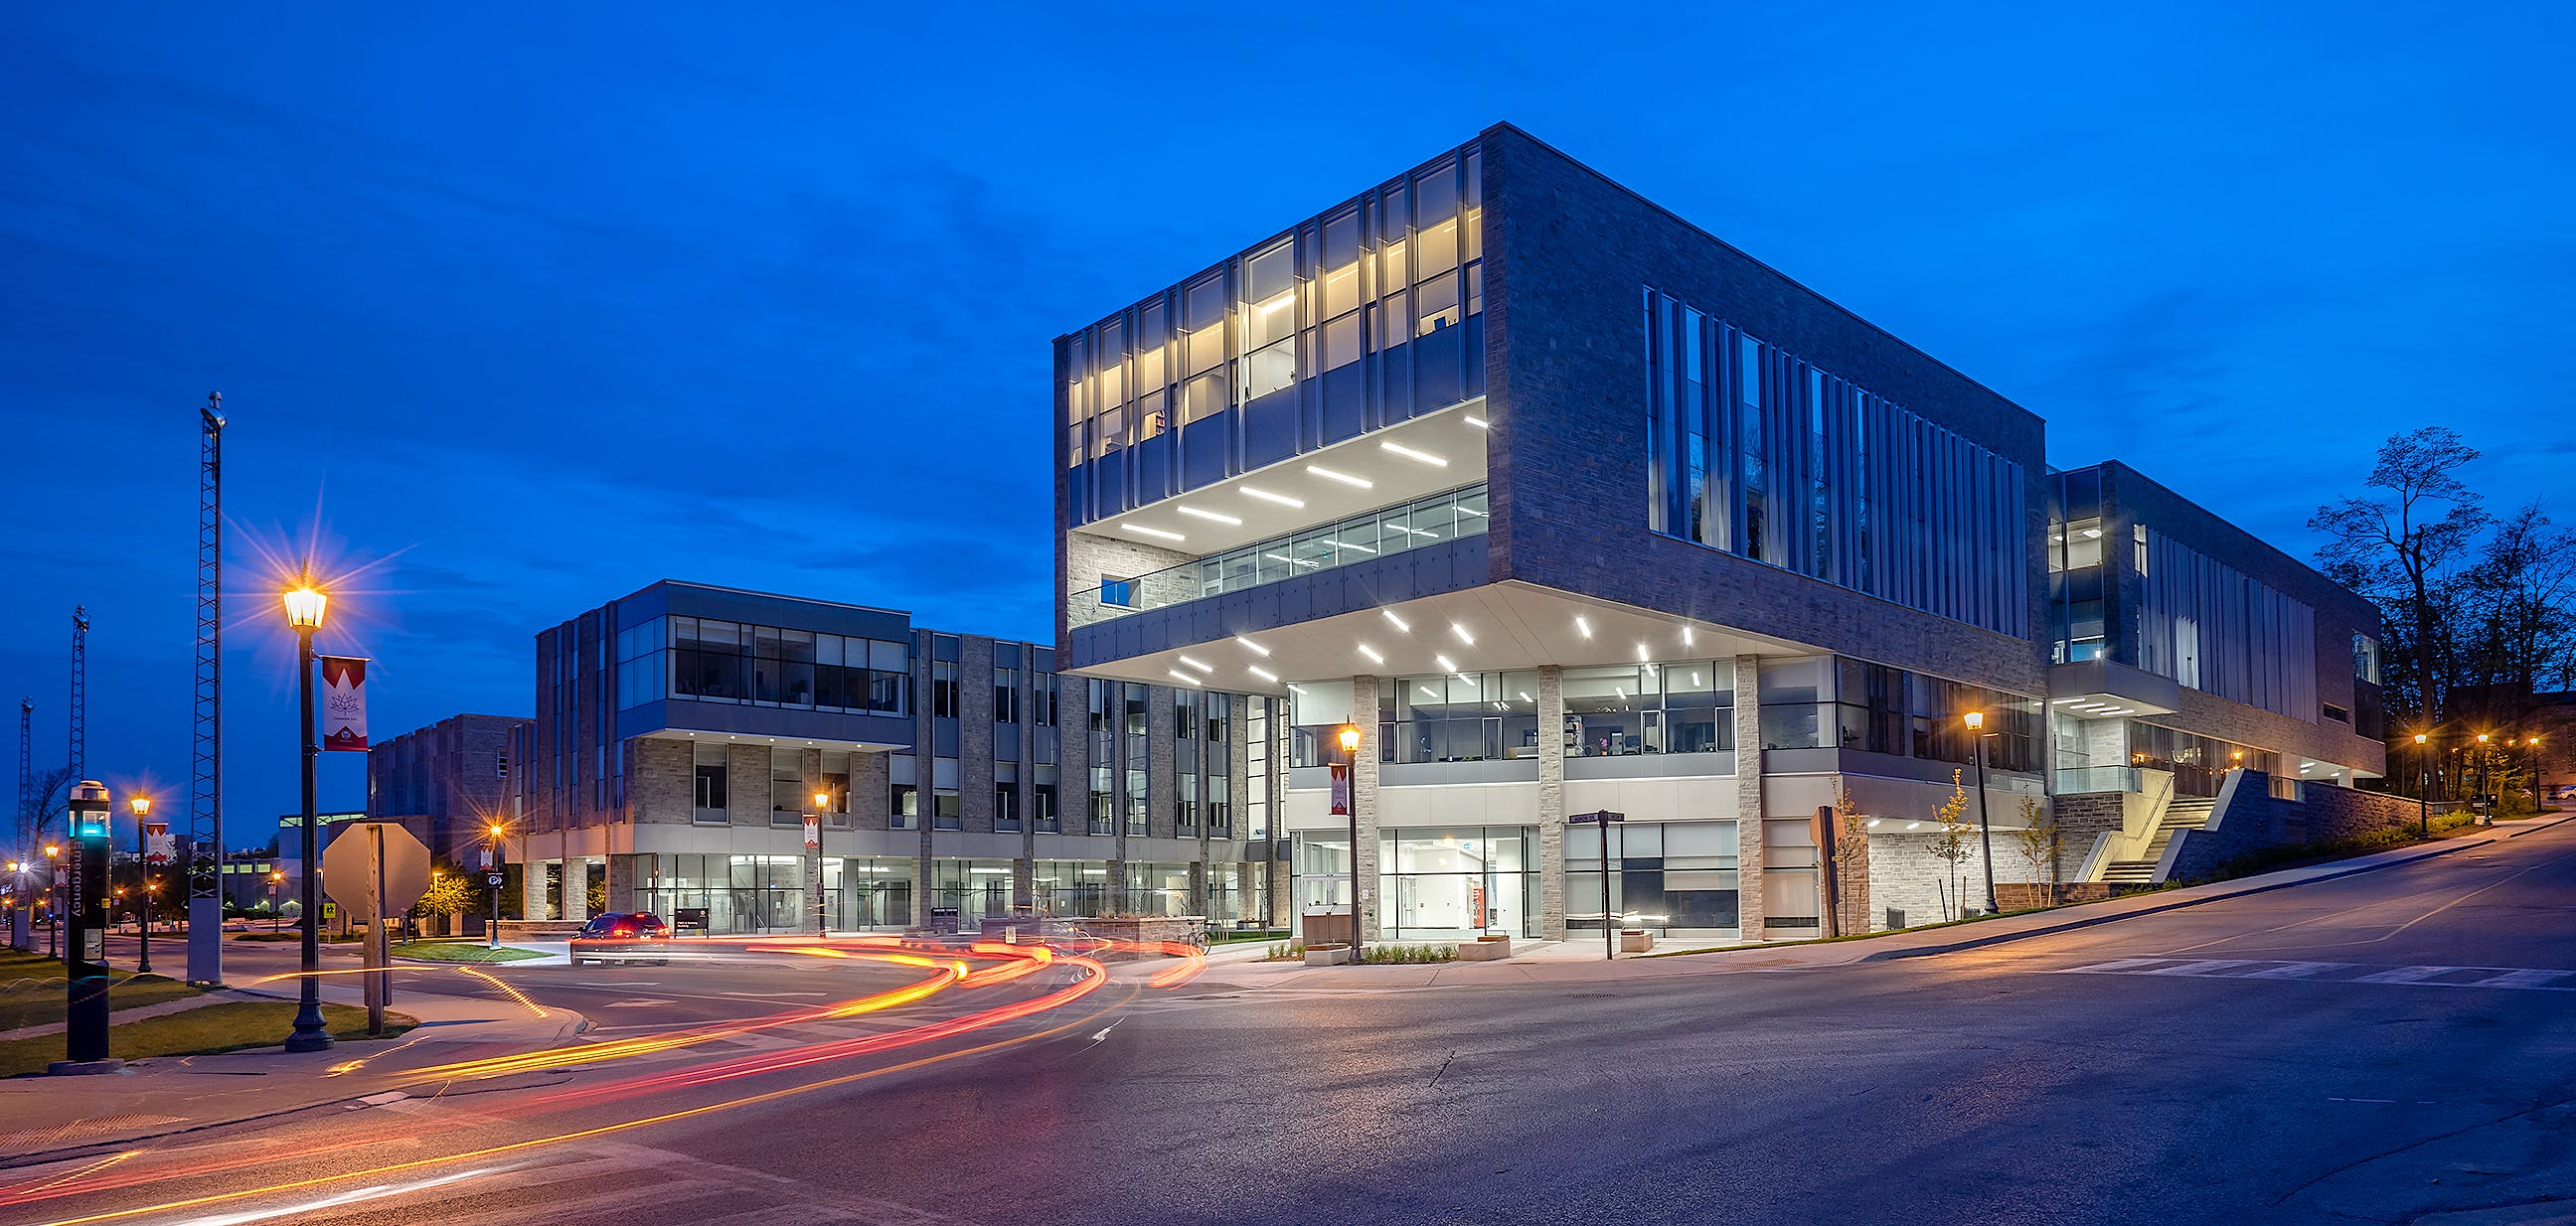 Architectural Photographer Scott Webb shows photos of the FIMS and Nursing Building, Western University